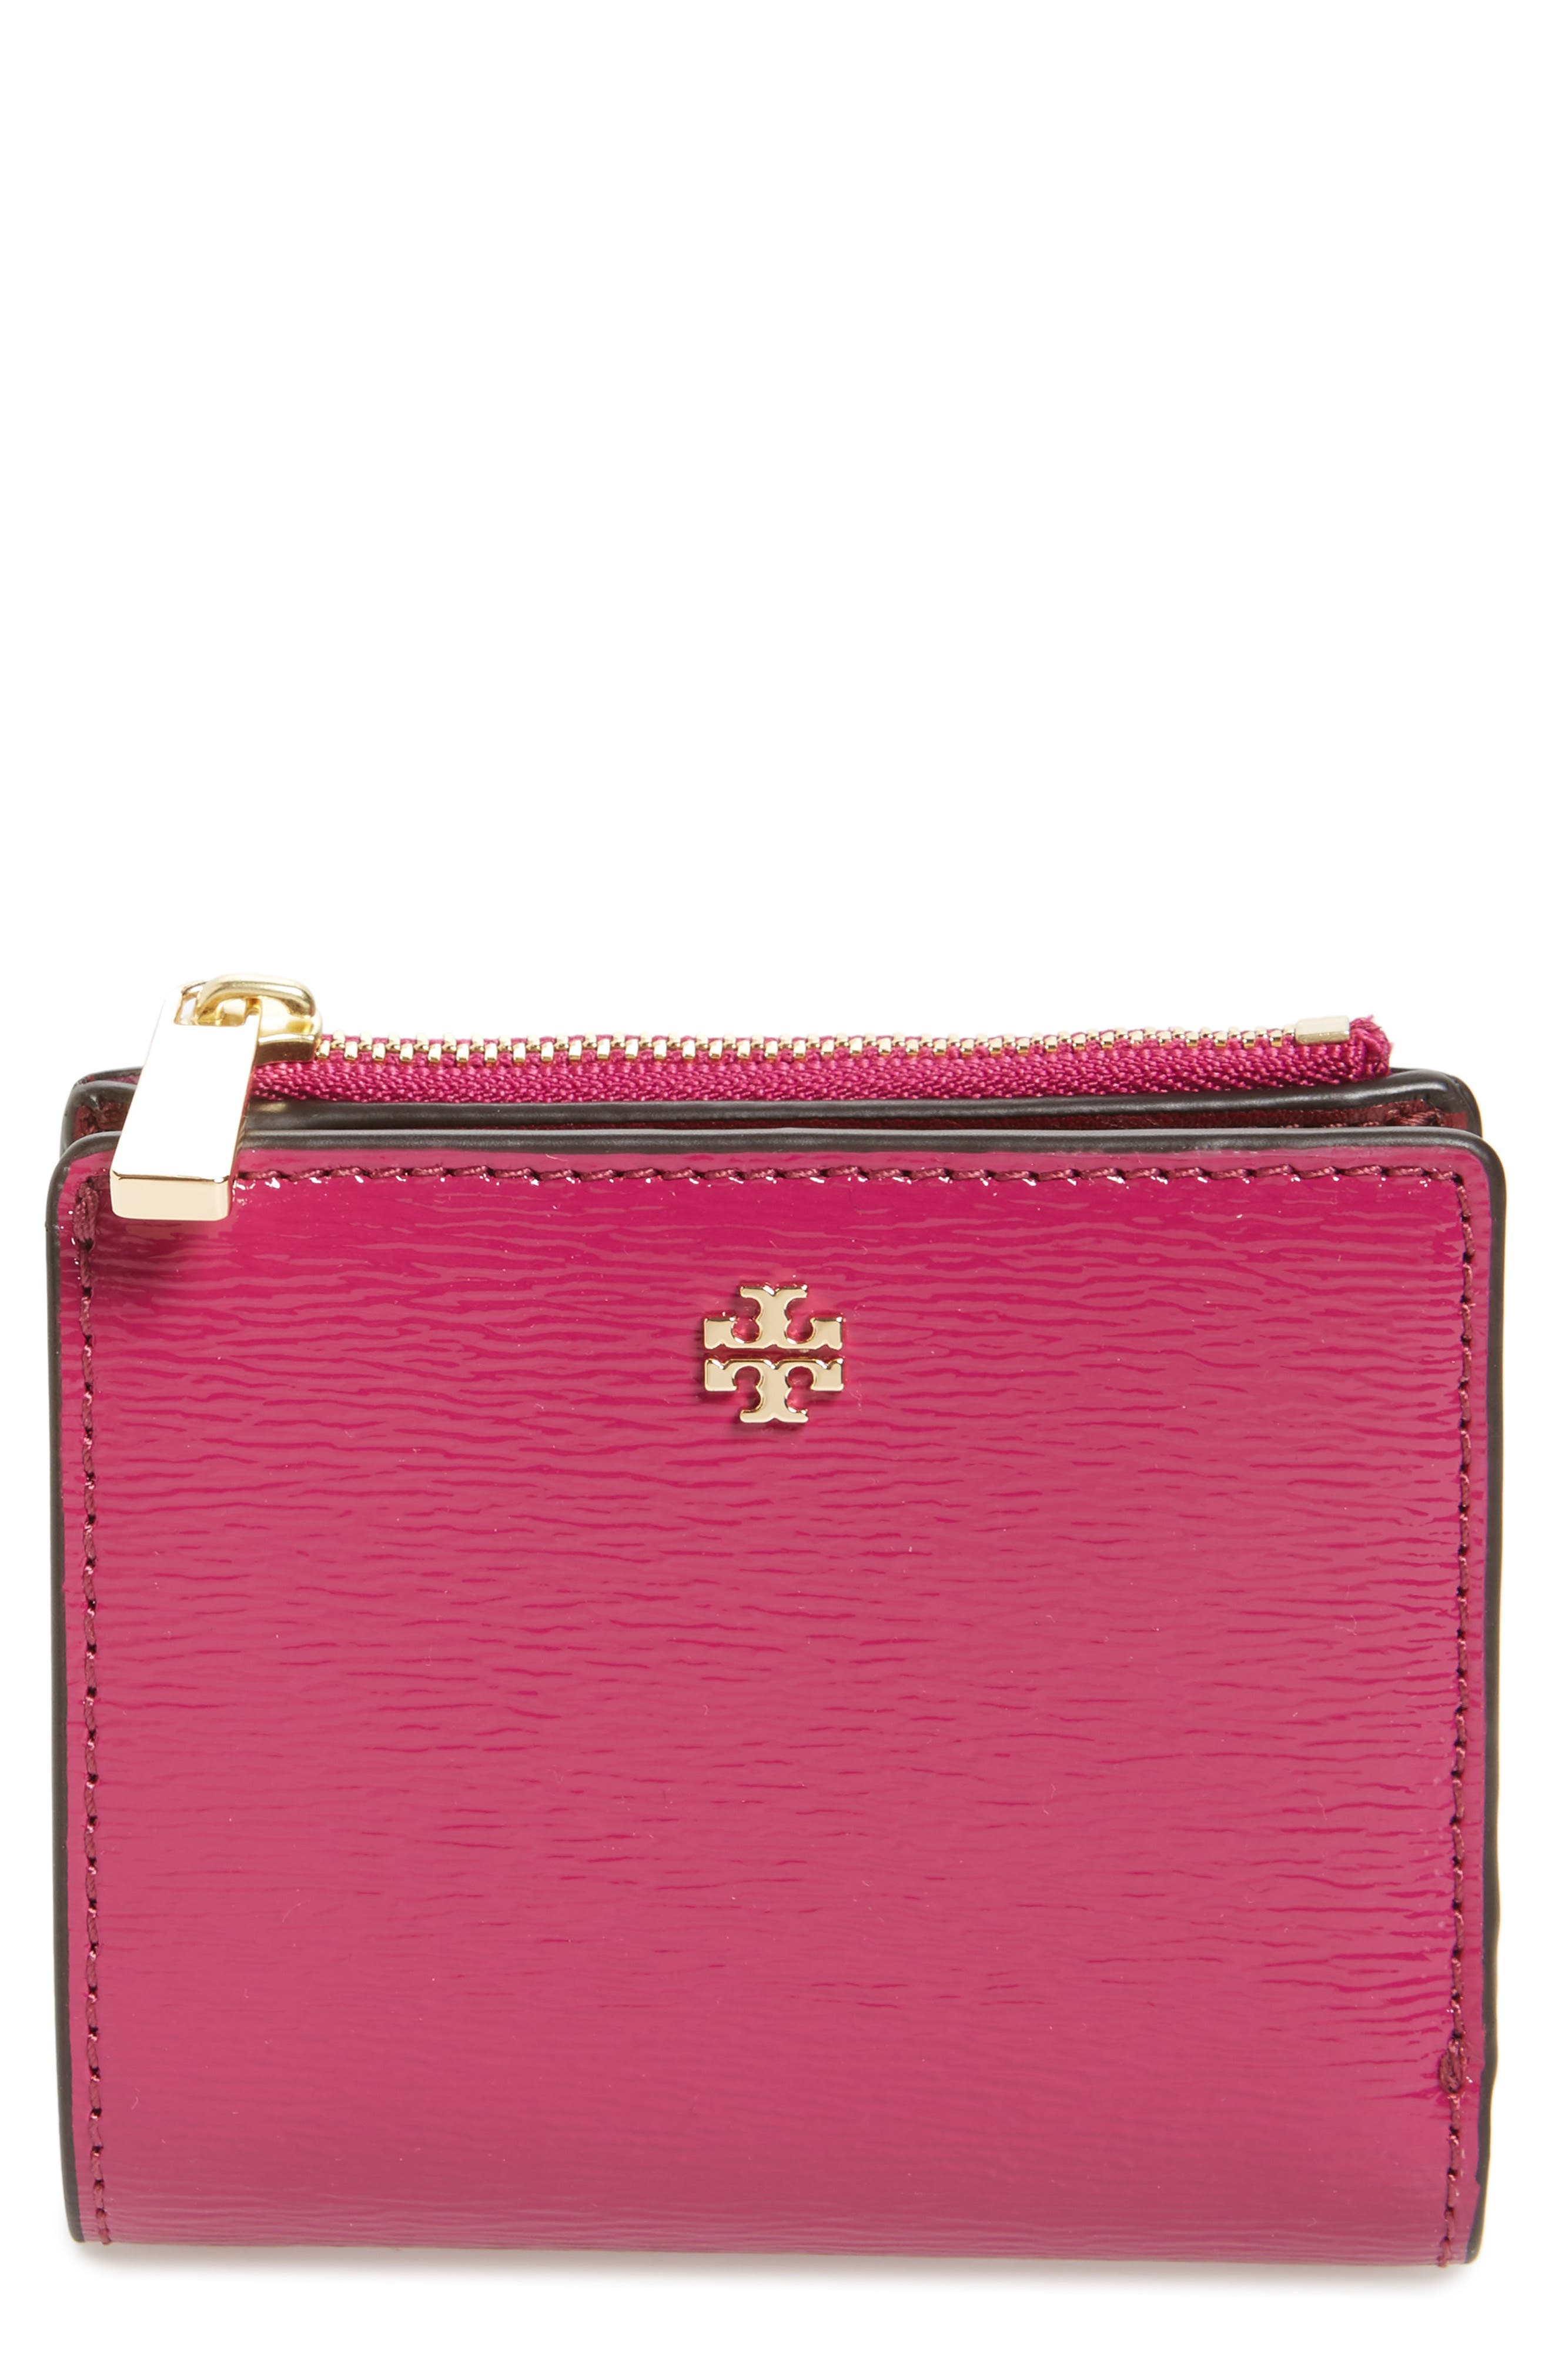 Mini Robinson Wallet Patent Leather Bifold Wallet,                         Main,                         color, Party Fuchsia